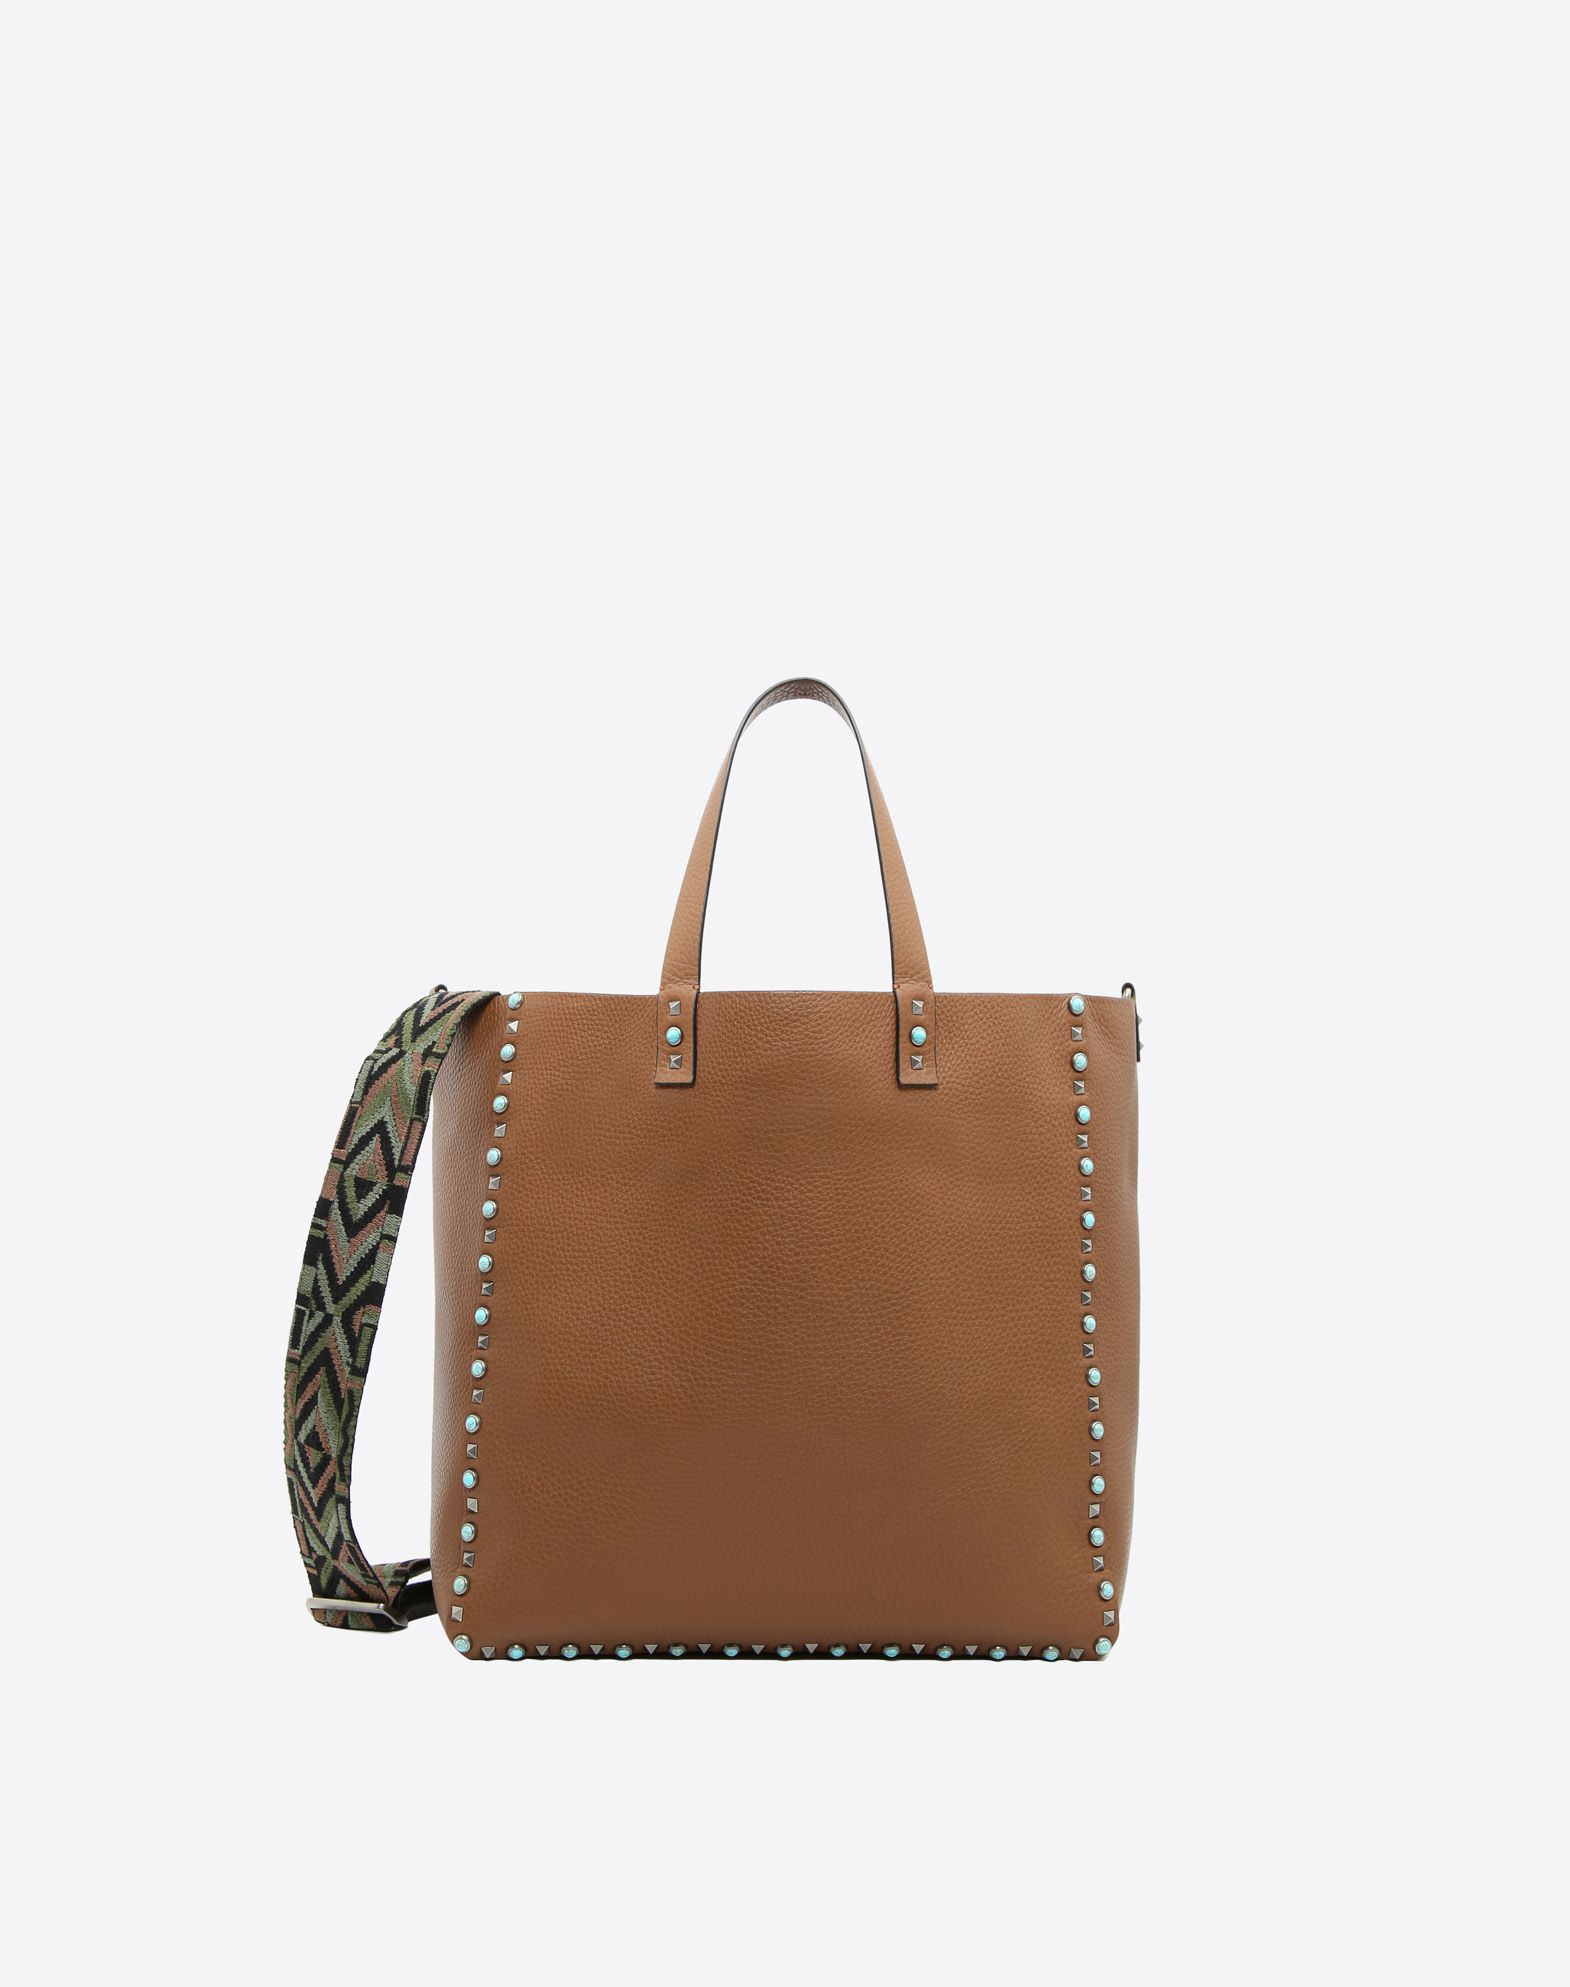 VALENTINO Contrasting applications  45331406hv